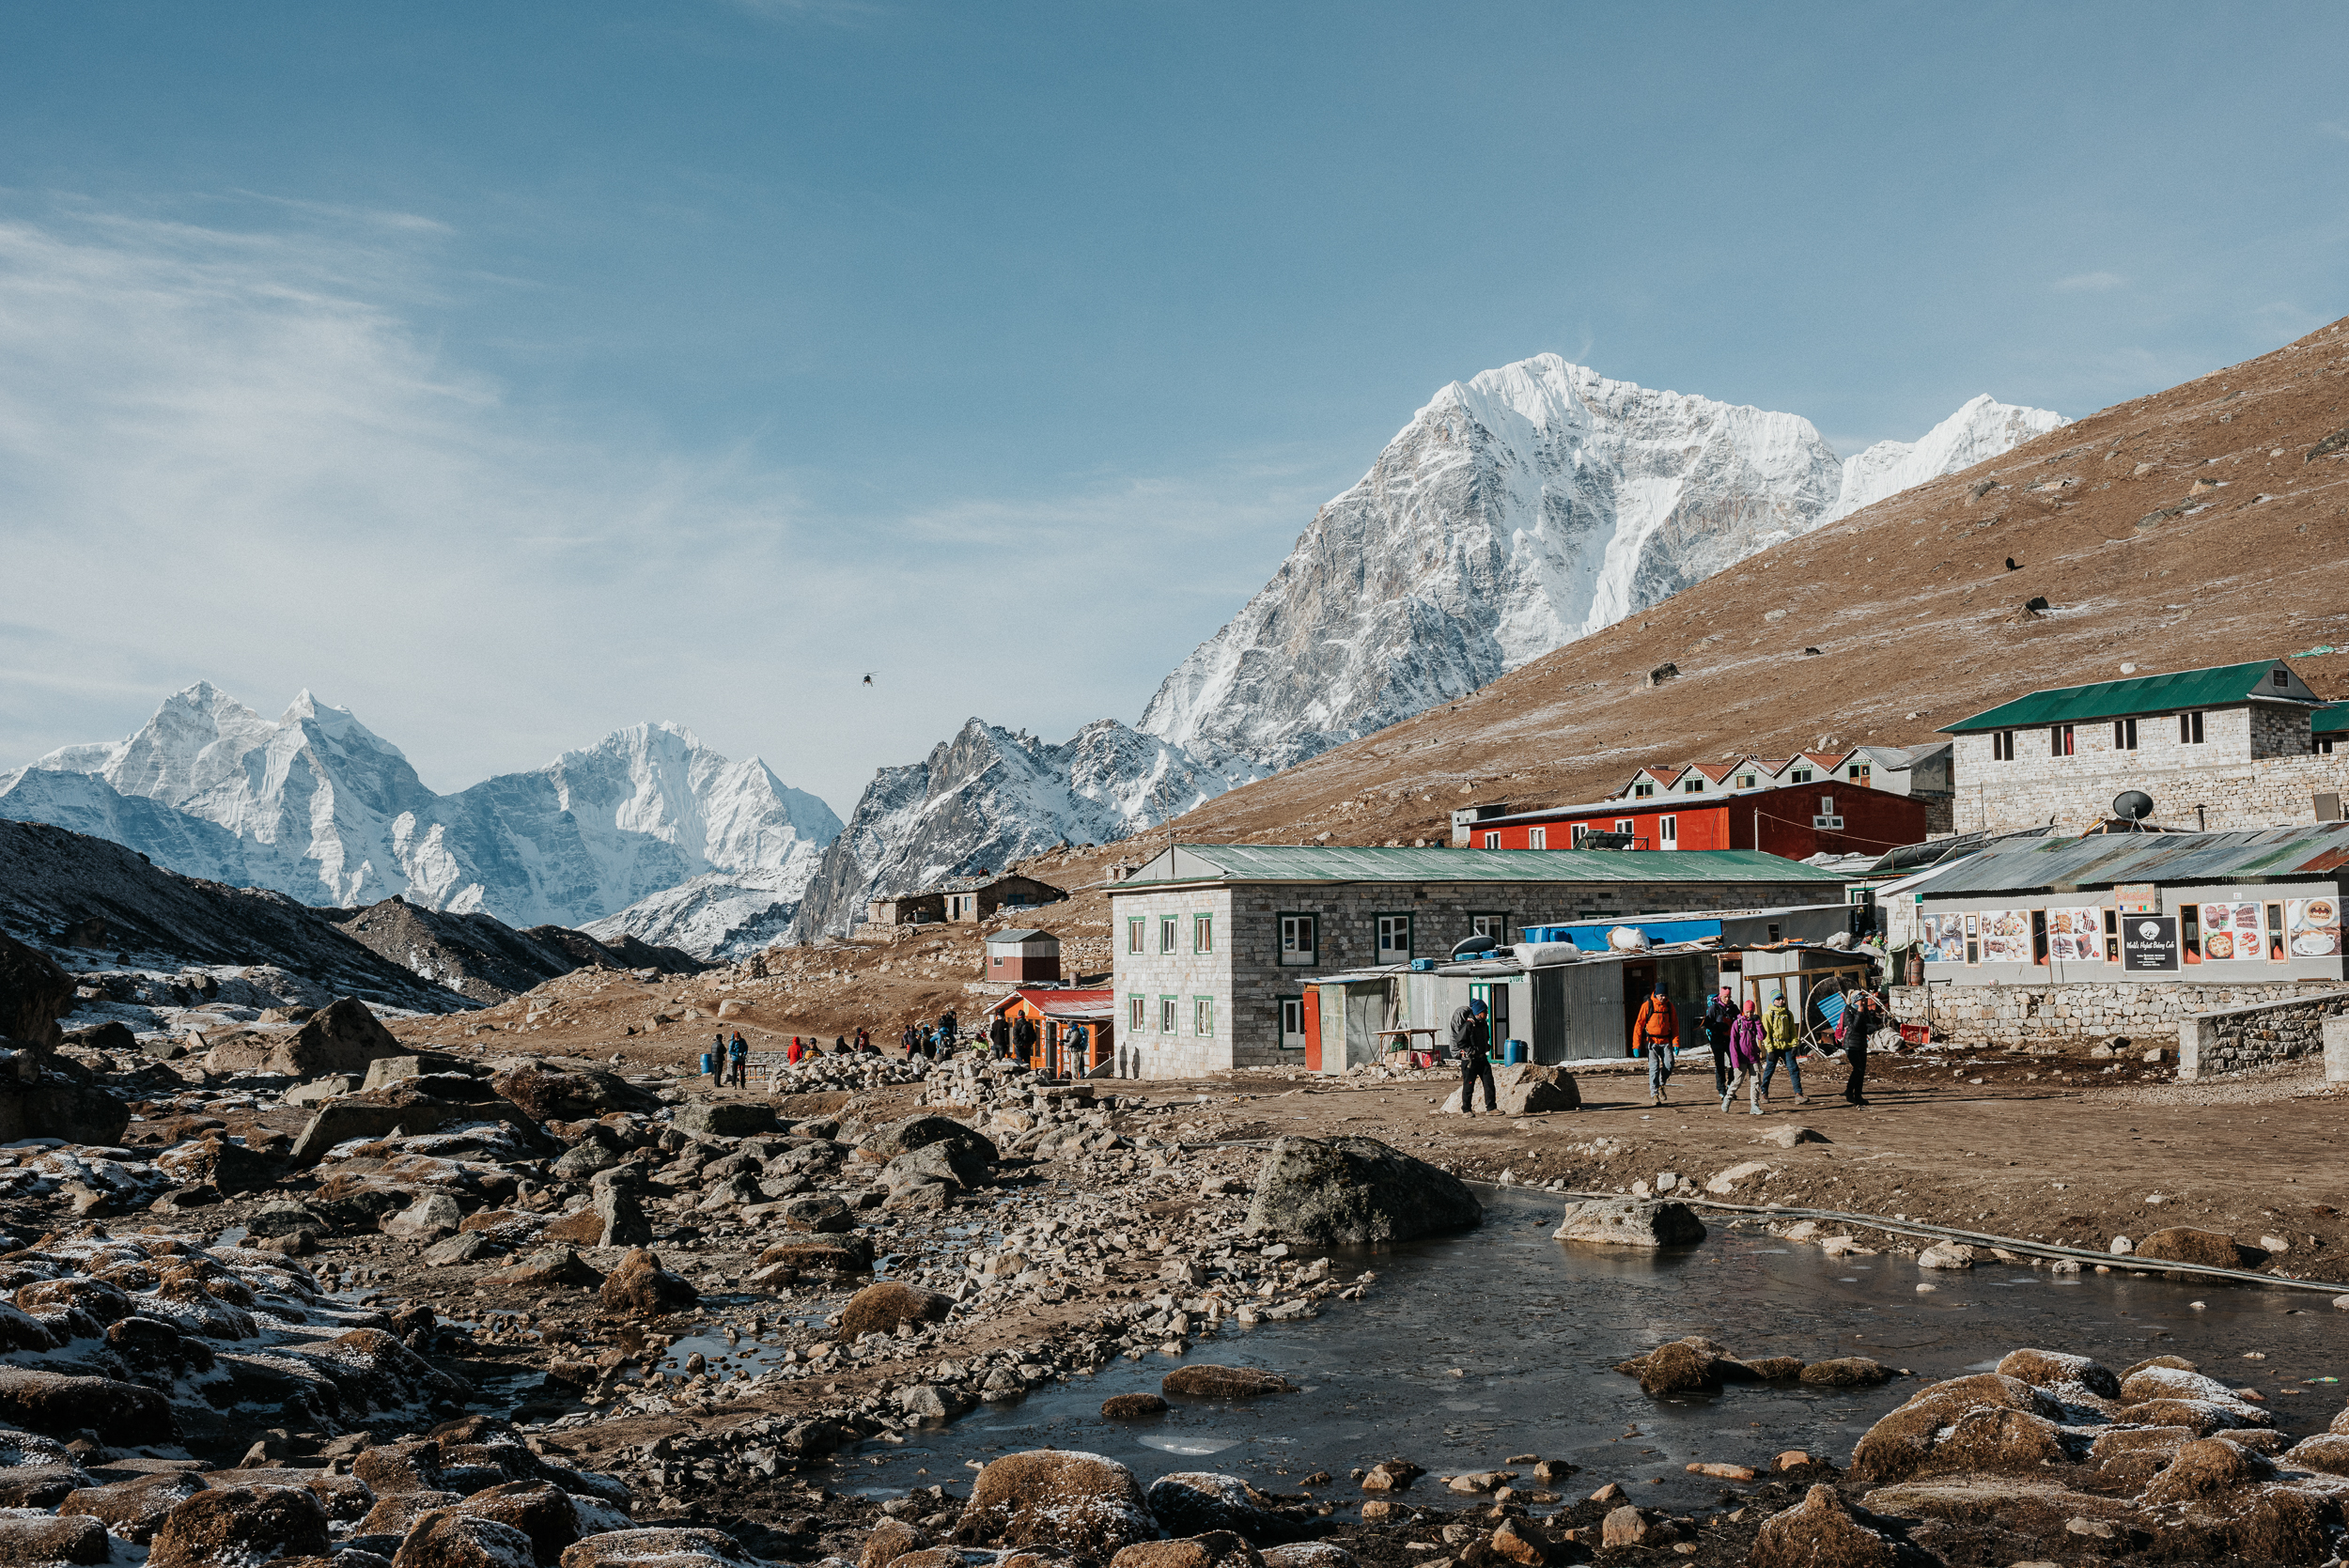 Nepal_EverestBaseCamp_2019_TaraShupe_Photography_DSC_4132.jpg